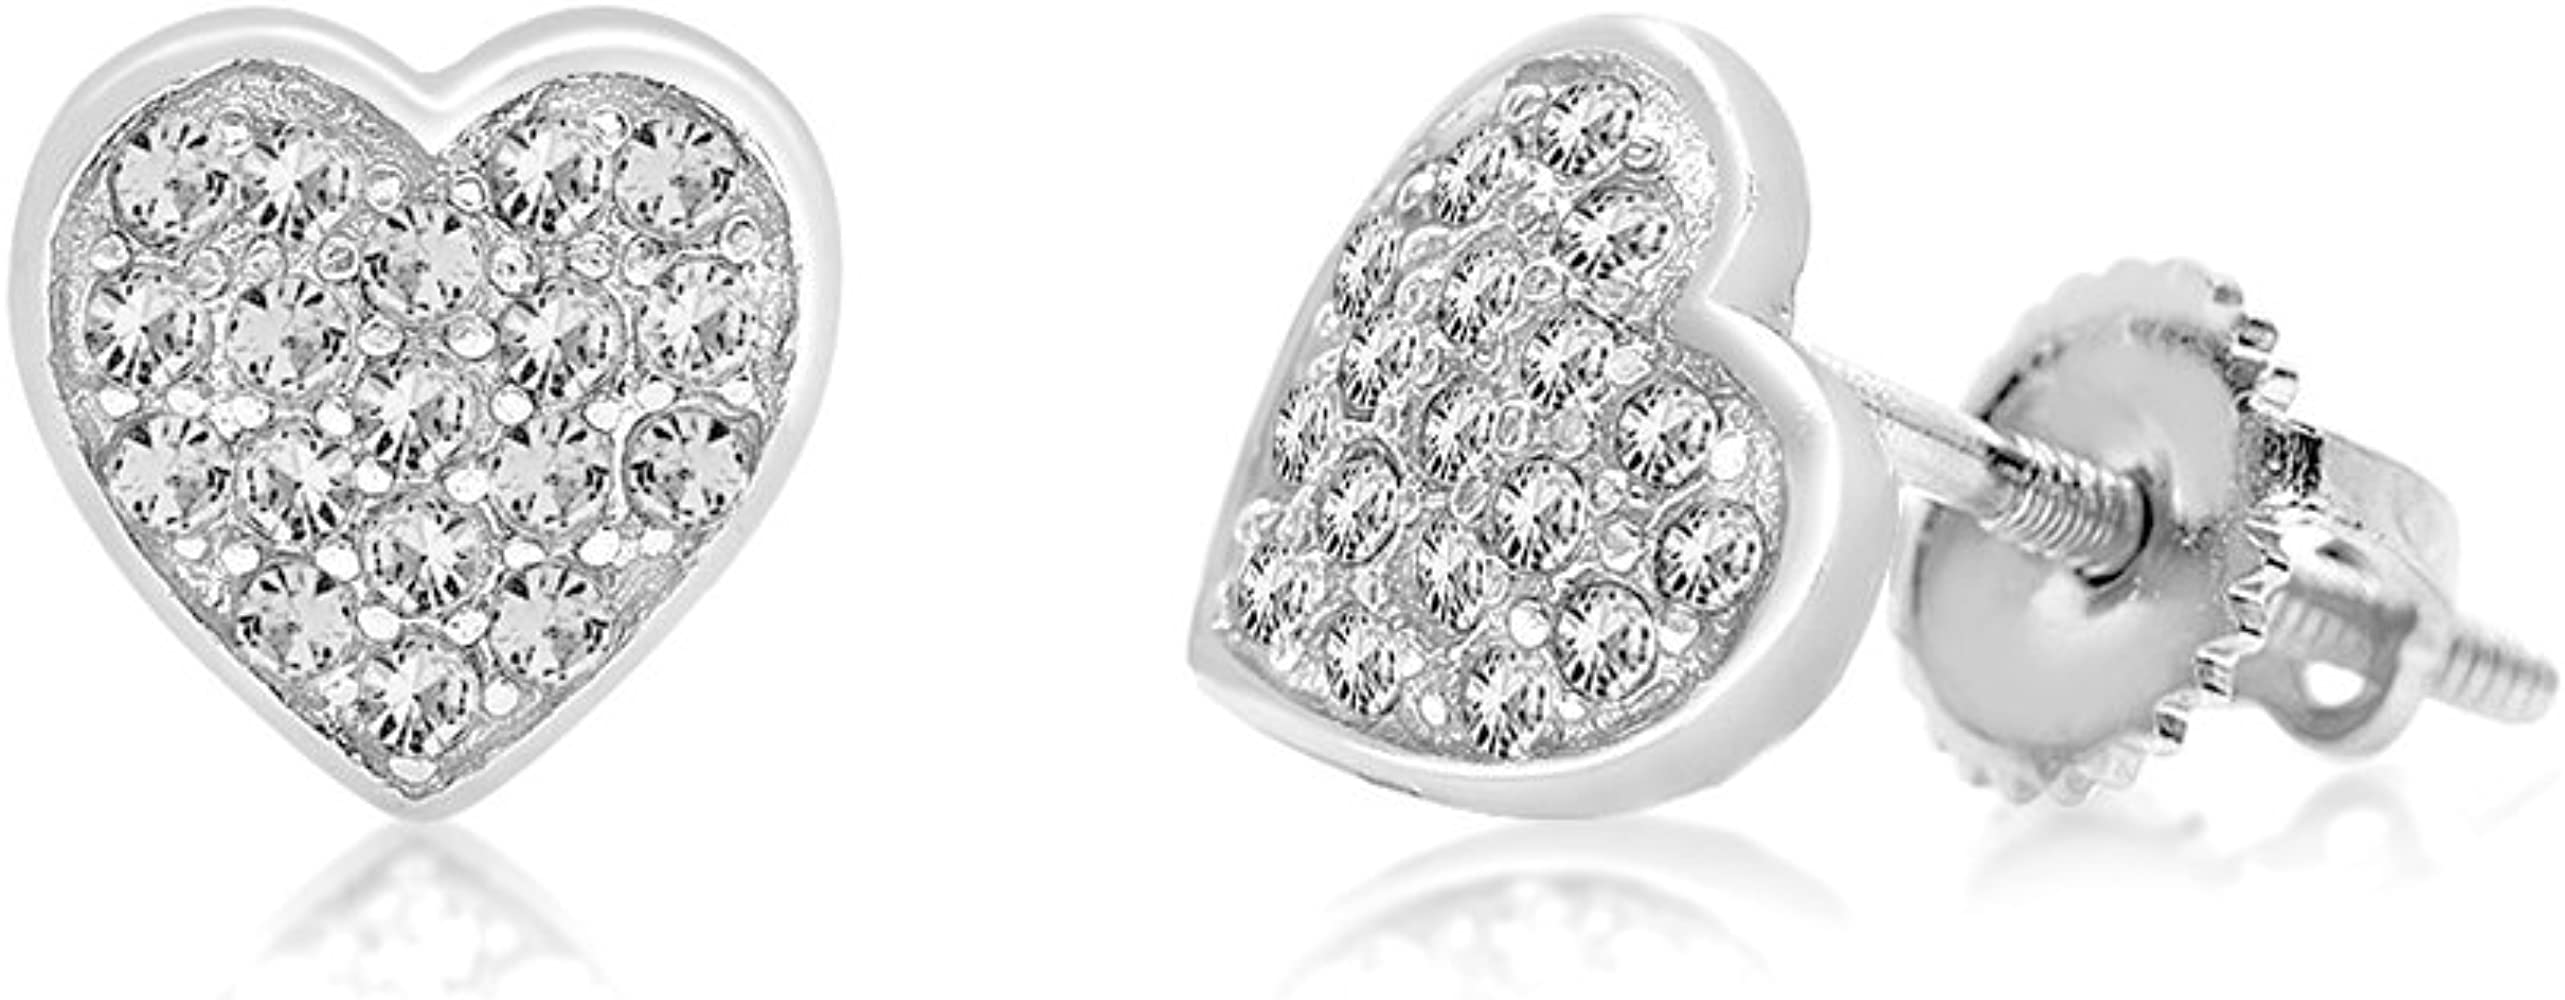 b0b60220ccd9b Kids Baby Girl Earrings With Swarovski Elements 925 Sterling, White Gold  Tone (Clear)